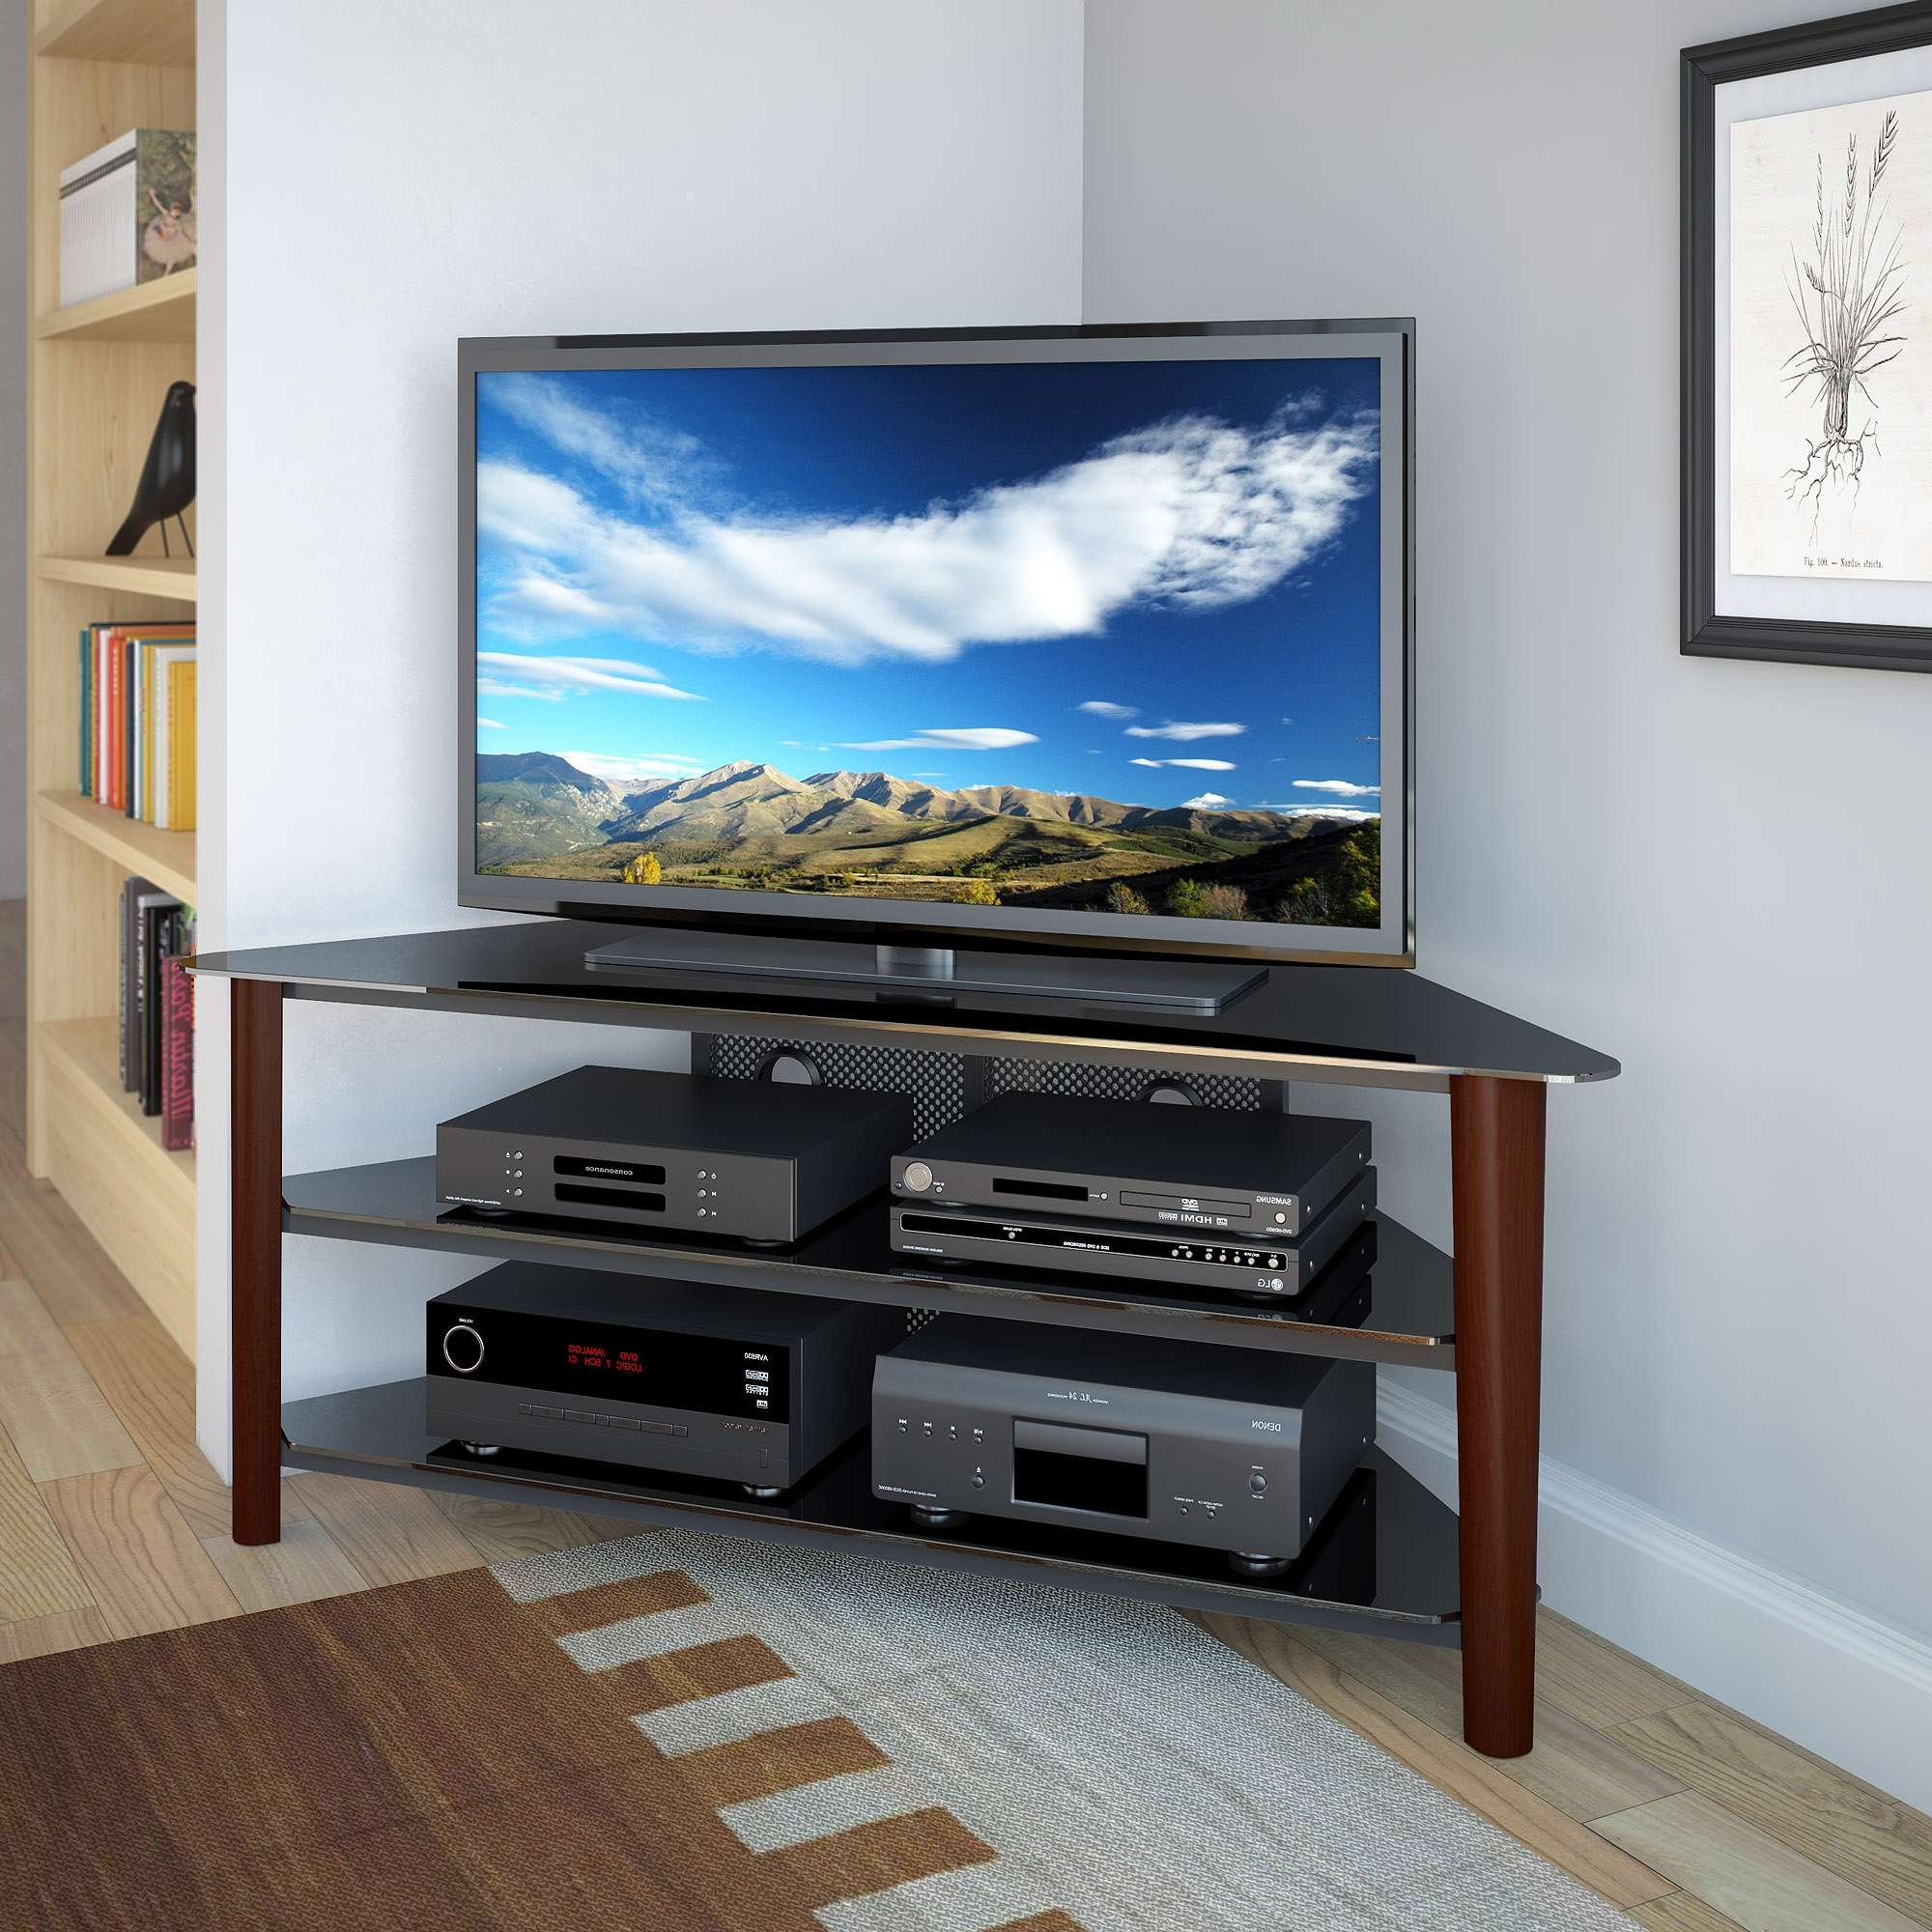 Corner Tv Stand For 55 Inch Flat Screen For Corner Tv Stands For 55 Inch Tv (View 3 of 15)